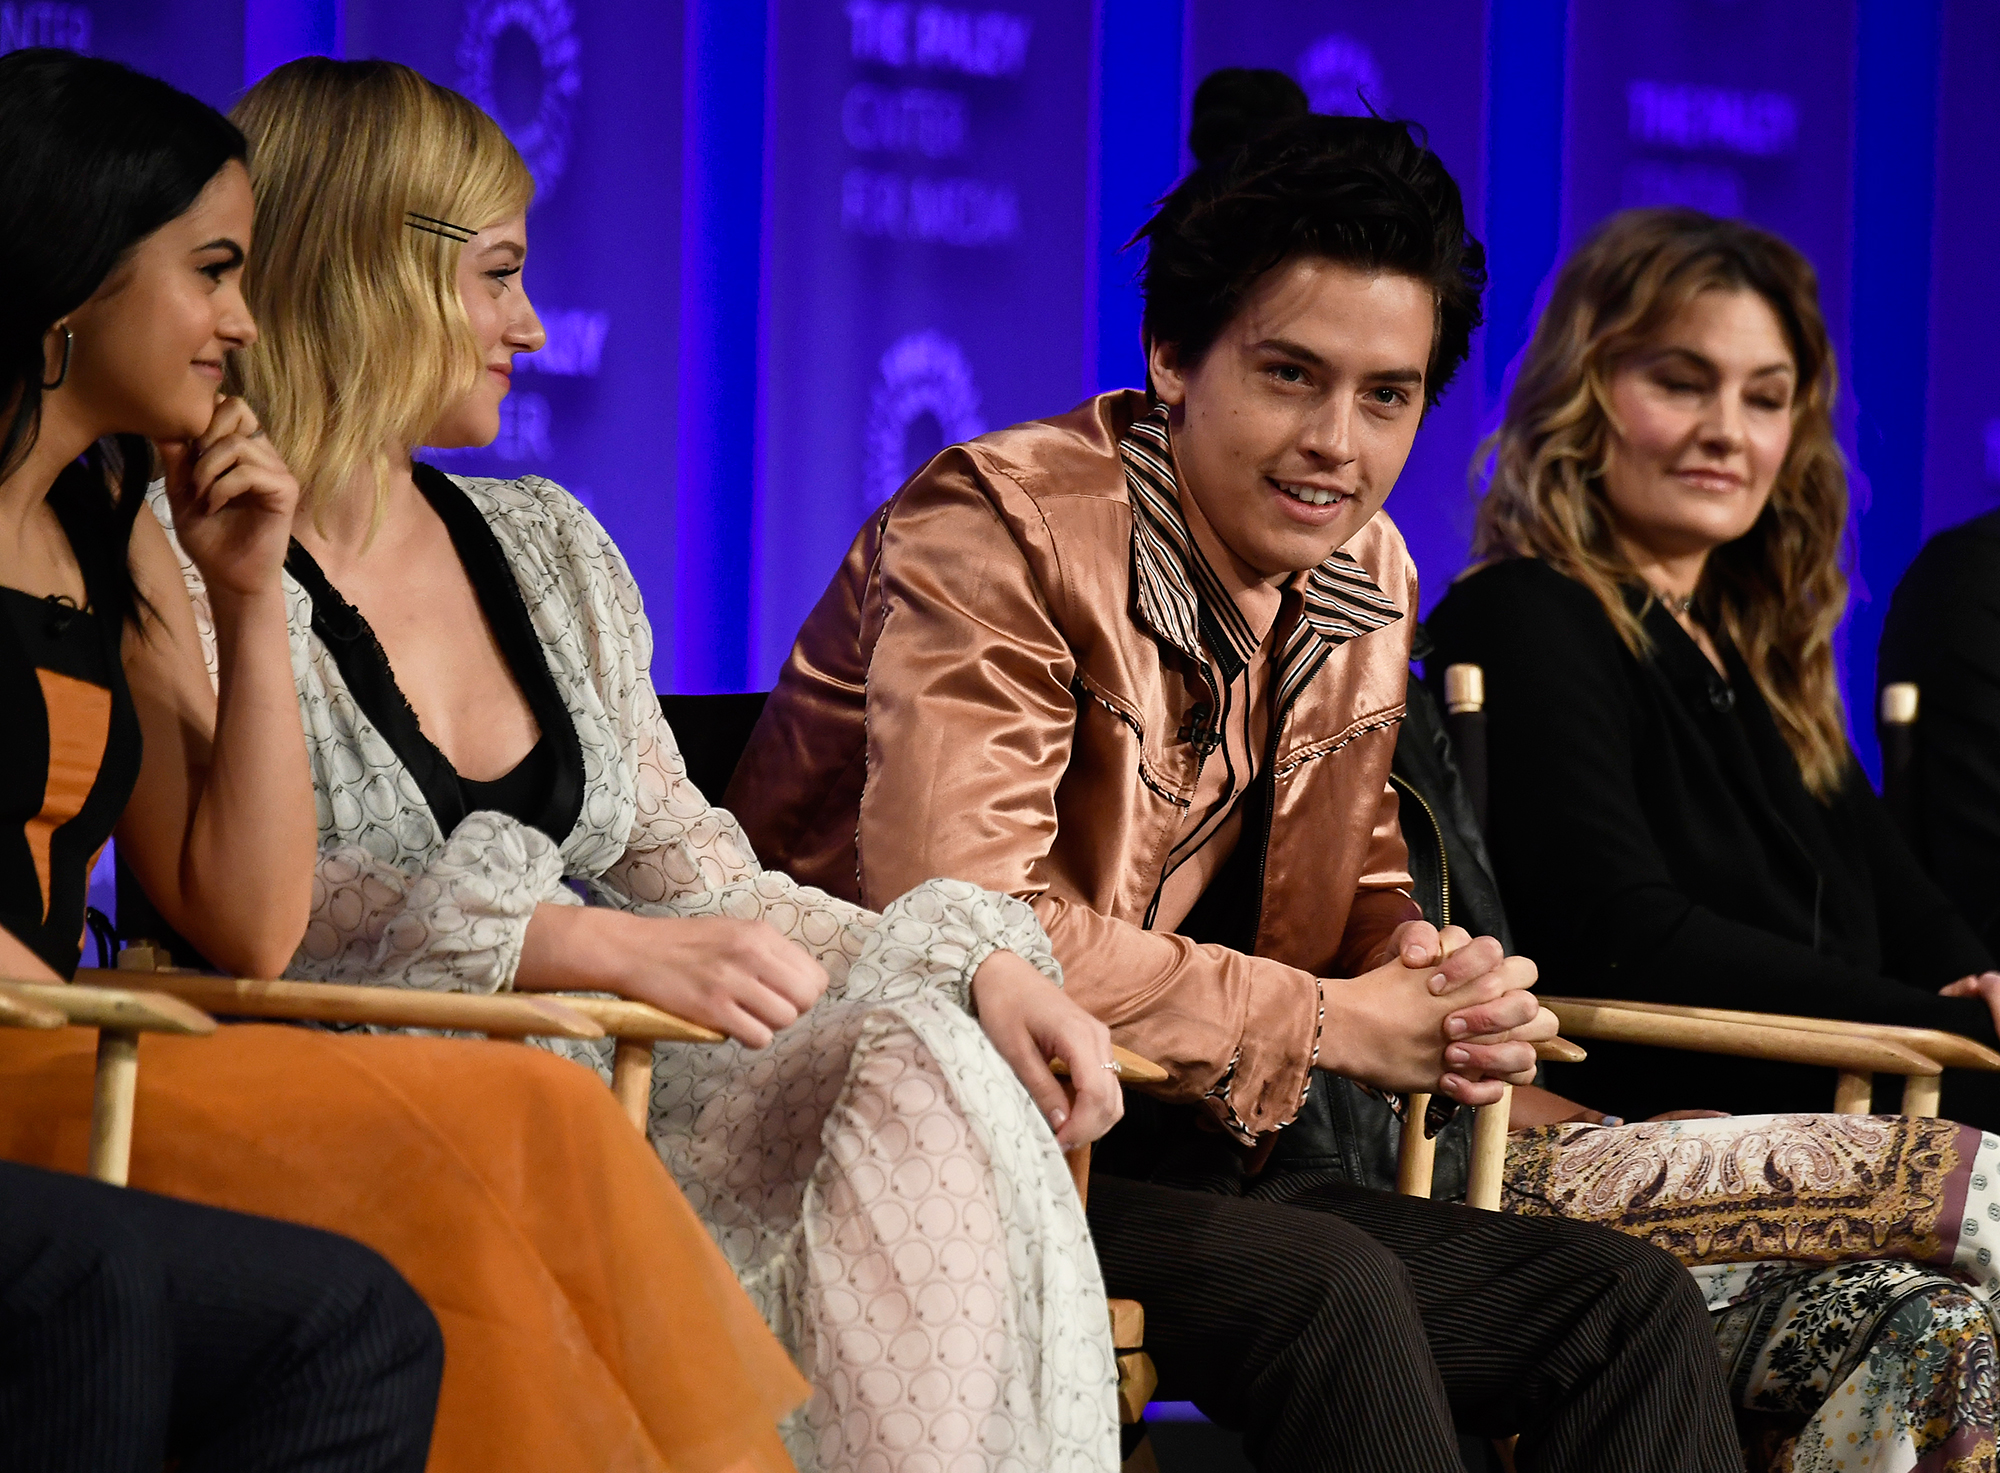 """Lili Reinhart and Cole Sprouse Relationship Timeline - Sprouse and Reinhart publicly addressed their relationship for the first time in March 2018 after a fan asked, """"Are you dating,"""" during a Q&A at PaleyFest L.A. While the actor gave a big grin and replied, """"No comment,"""" Reinhart remained silent."""